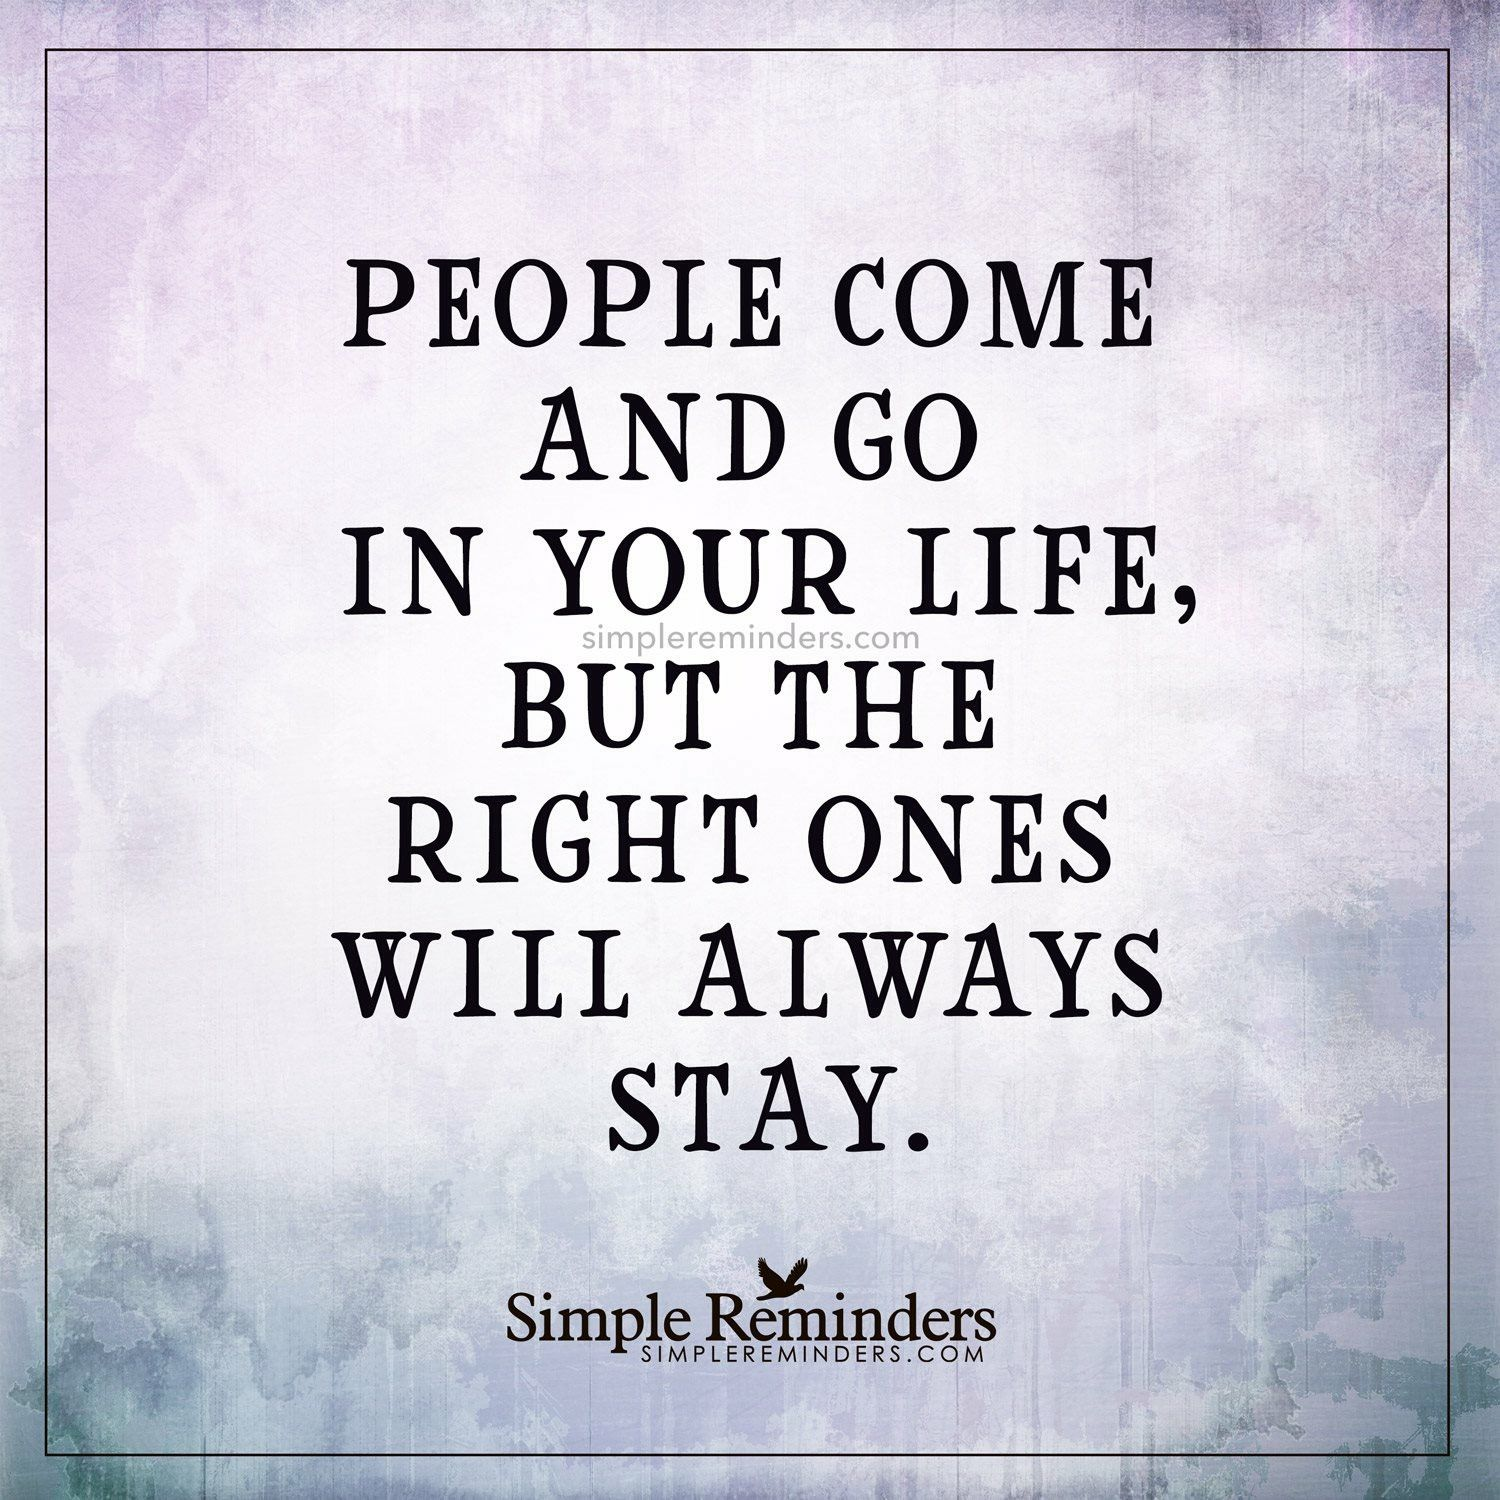 Life Positive Quotes Pinmarie Grano On Inspirational Quotes  Pinterest  Wisdom